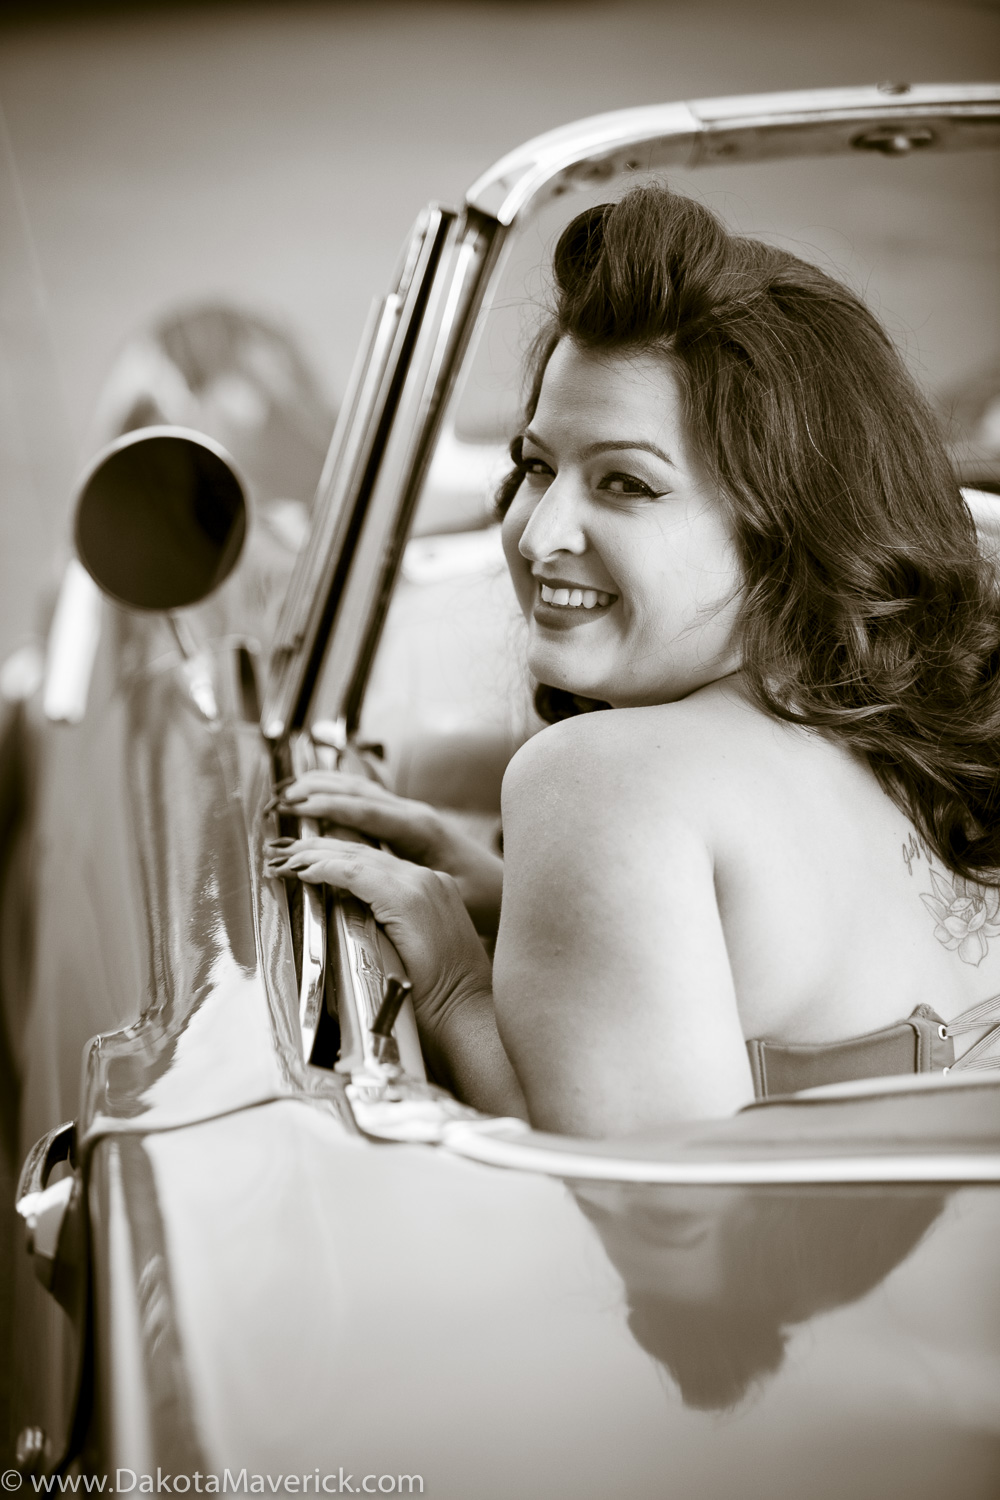 Vancouver Pinup Photographer - April (8 of 19).jpg